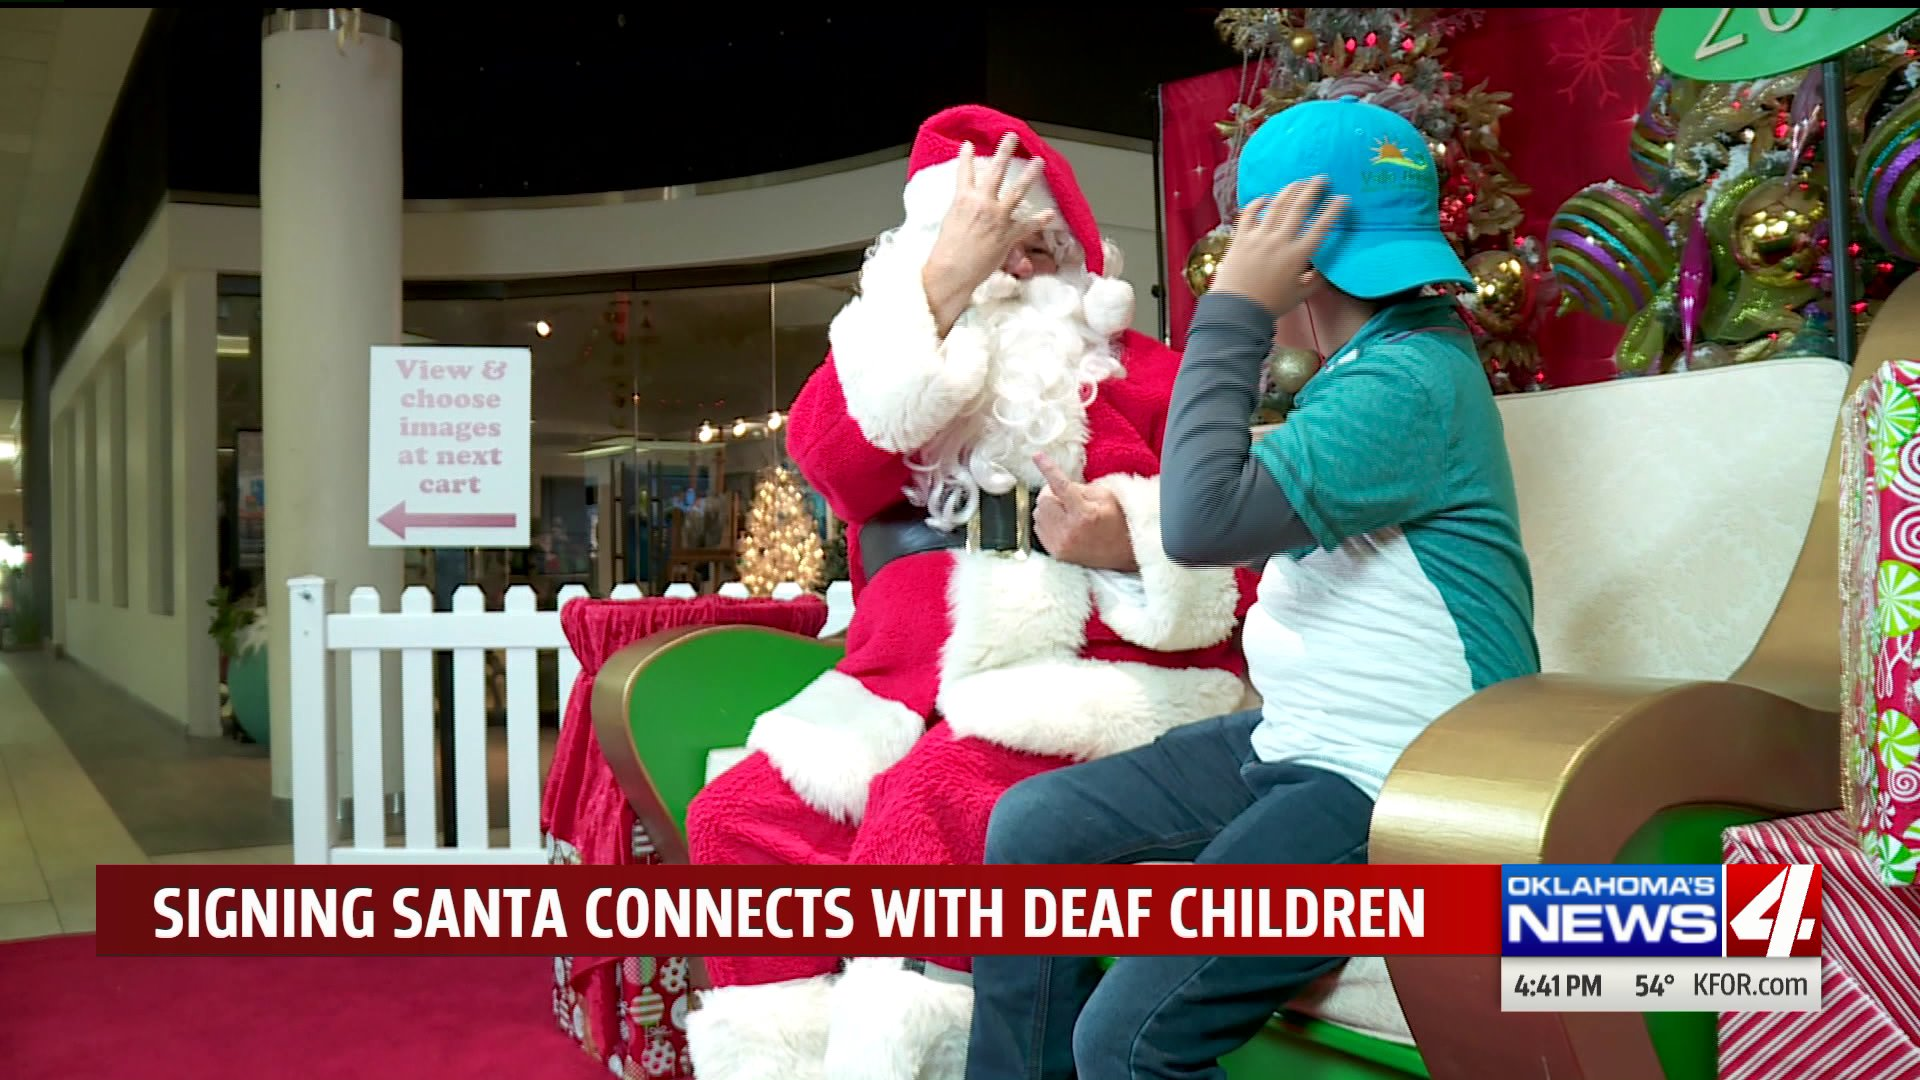 Santa signs with deaf/hoh children